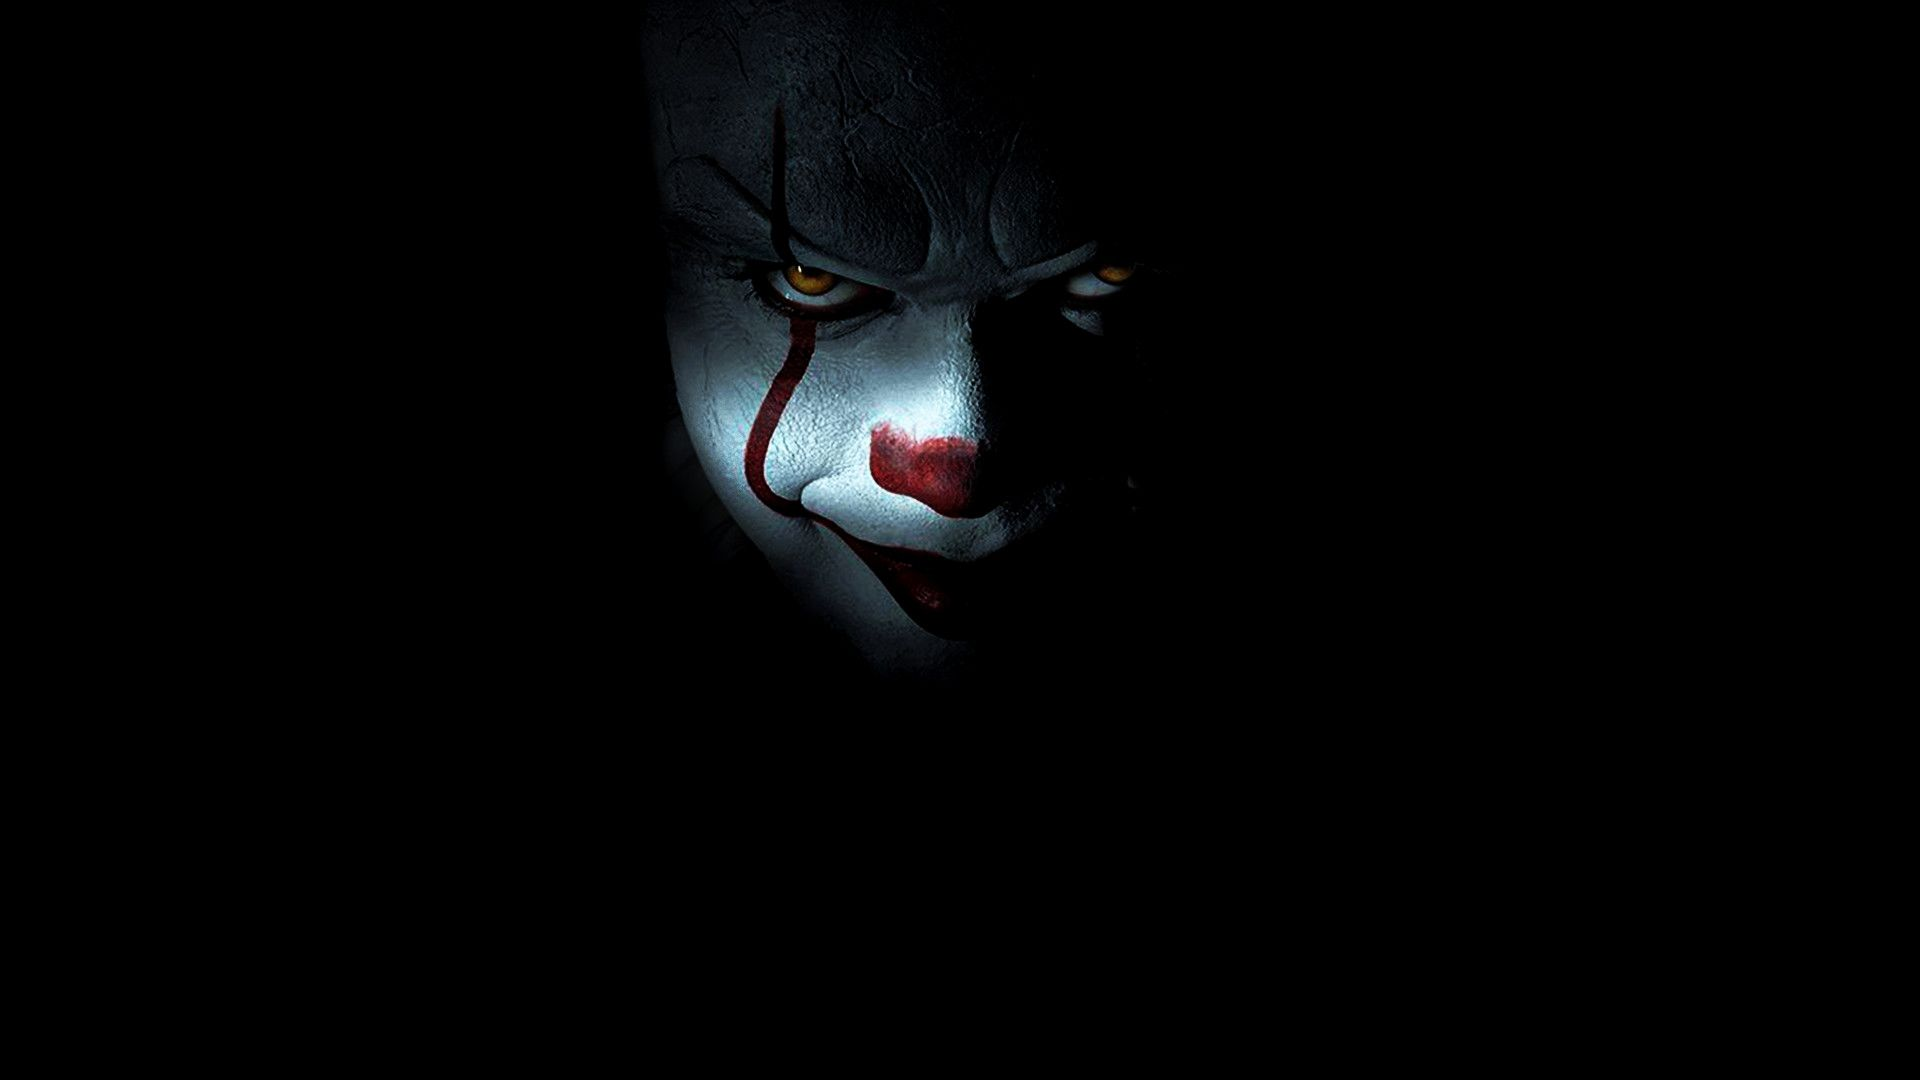 Pennywise Hd Wallpapers Top Free Pennywise Hd Backgrounds Wallpaperaccess